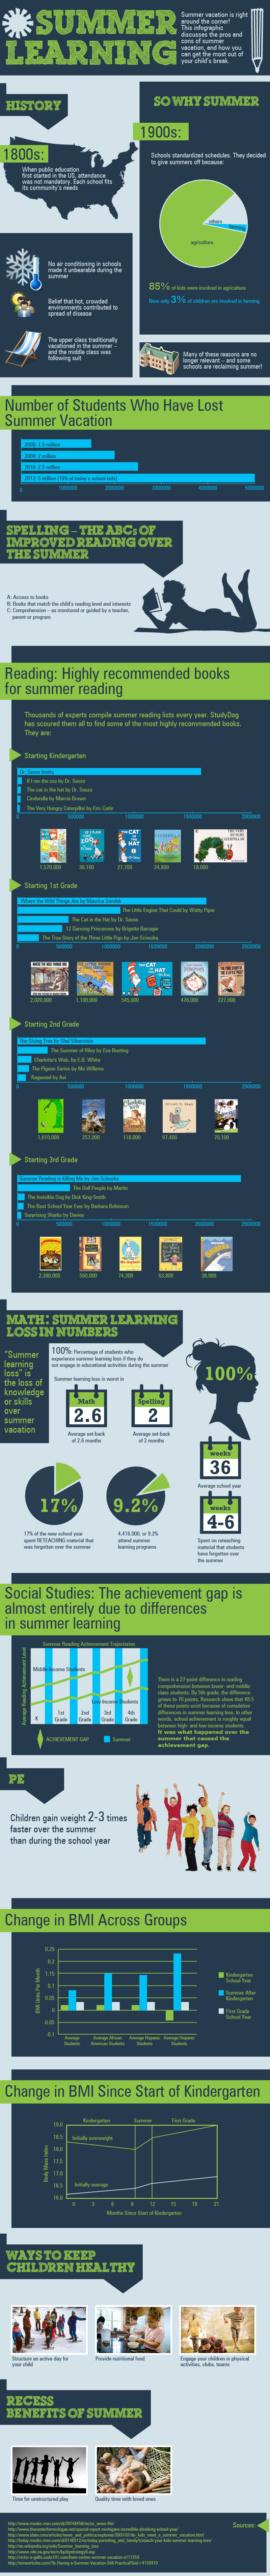 Summer learning - pros and cons